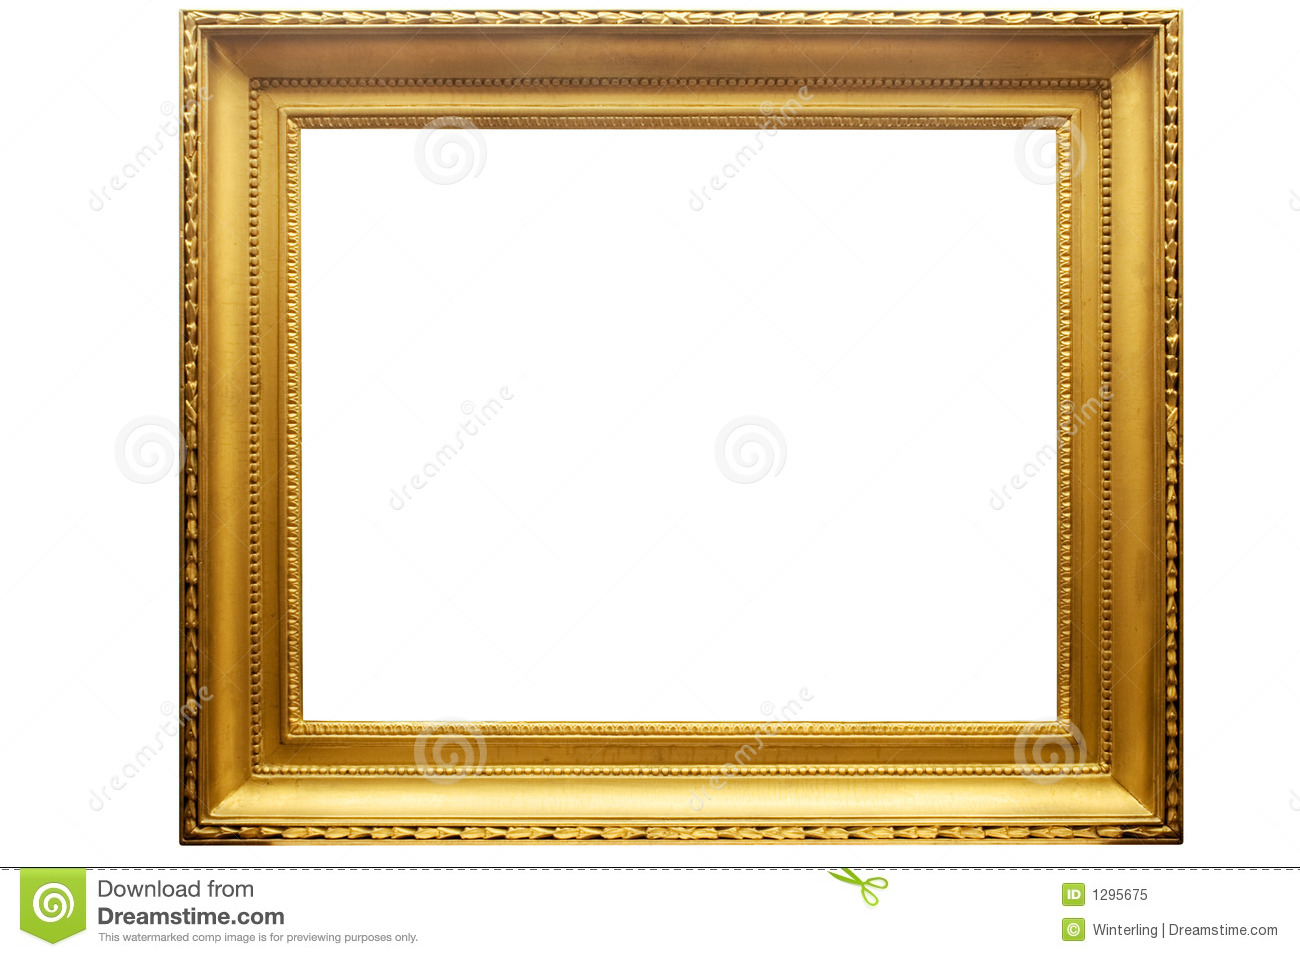 Rectangular Golden Picture Frame W/ Path Stock Image - Image of arts ...